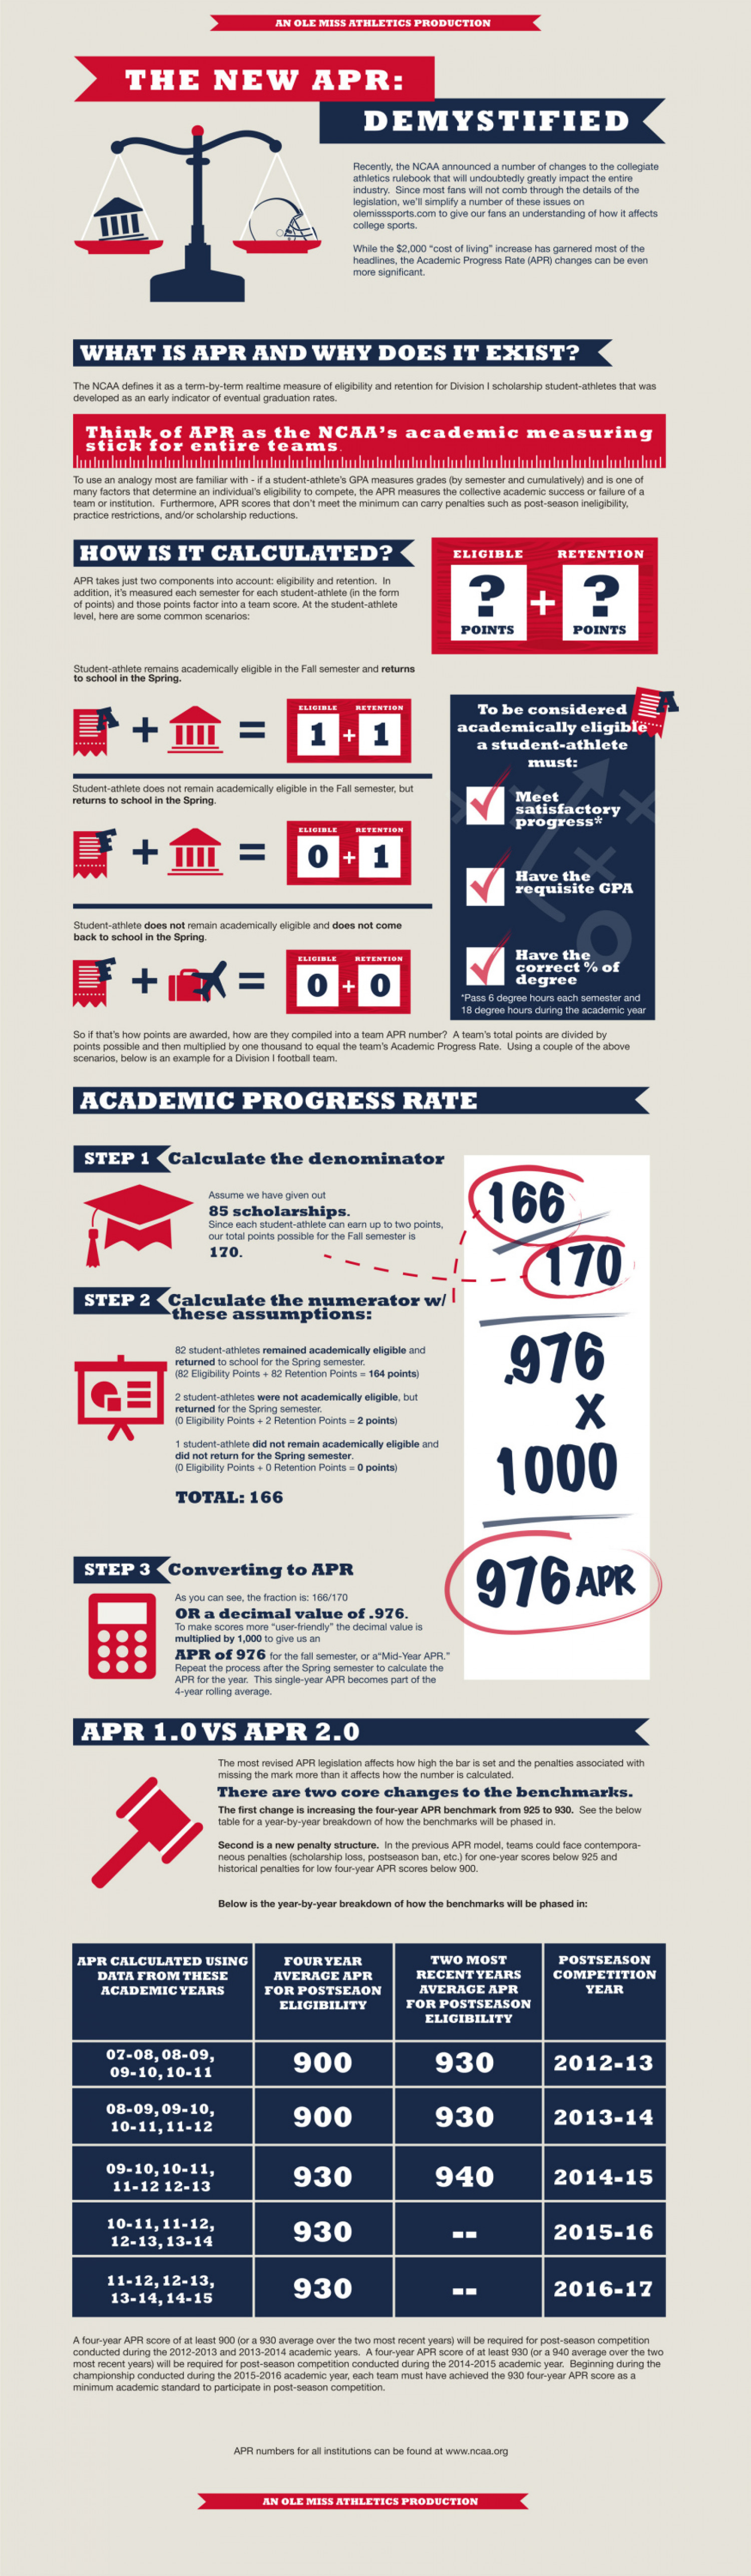 APR Demystified Infographic